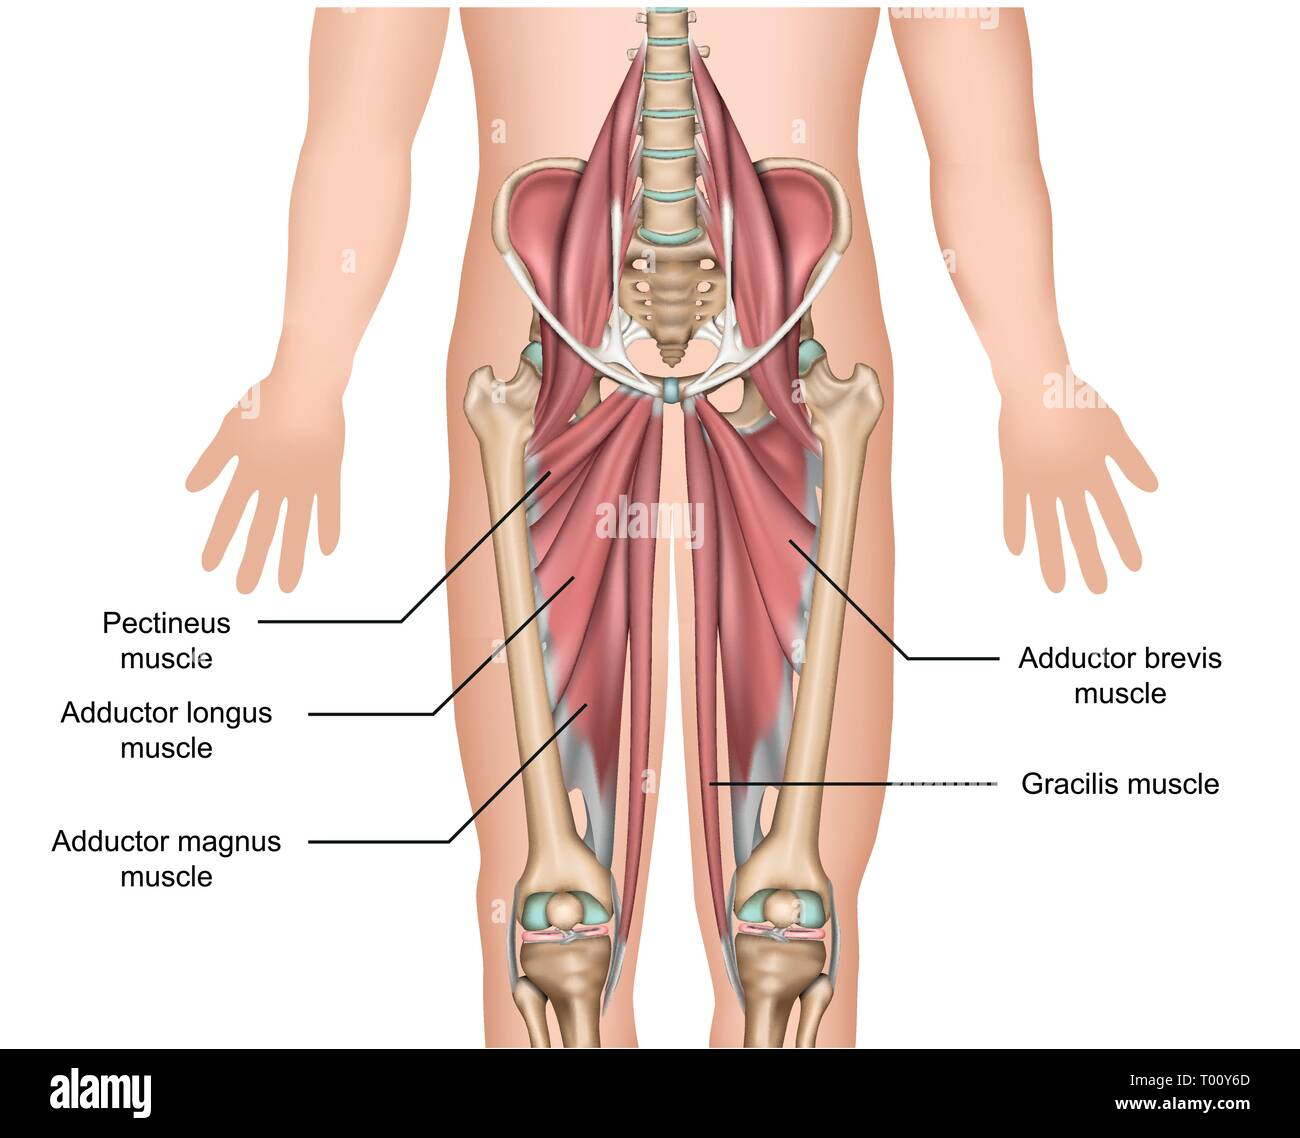 adductor muscles anatomy 3d medical vector illustration on white background - Stock Image